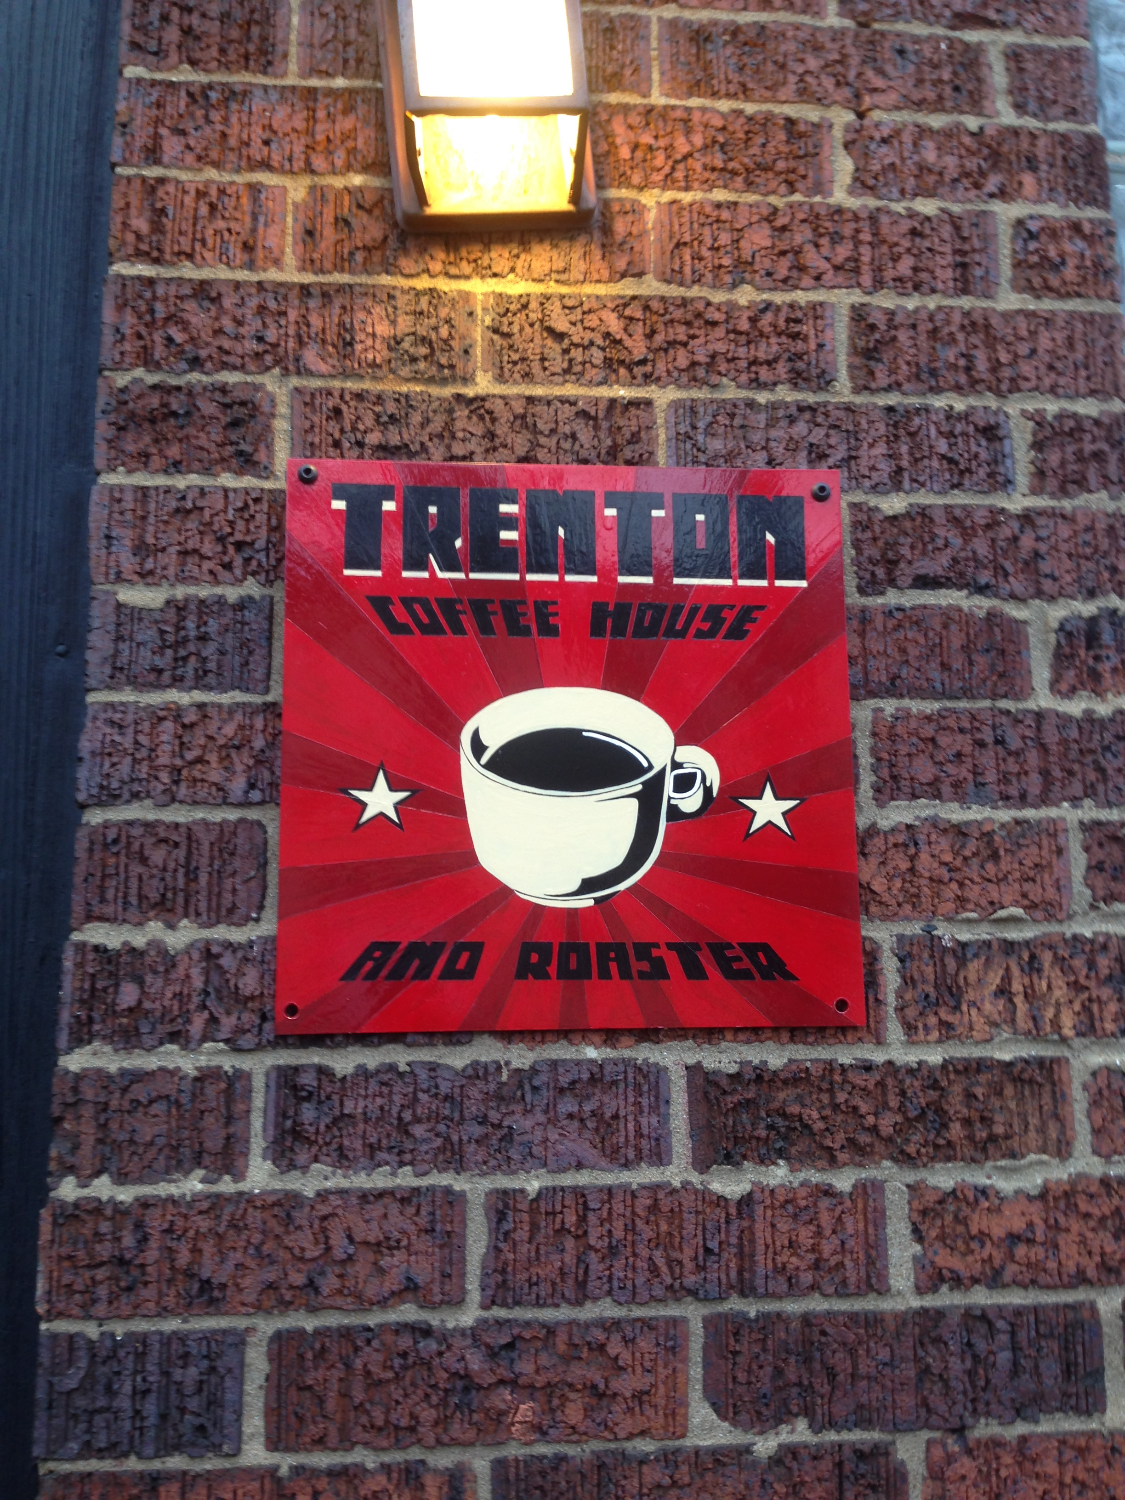 trenton coffee house and roaster